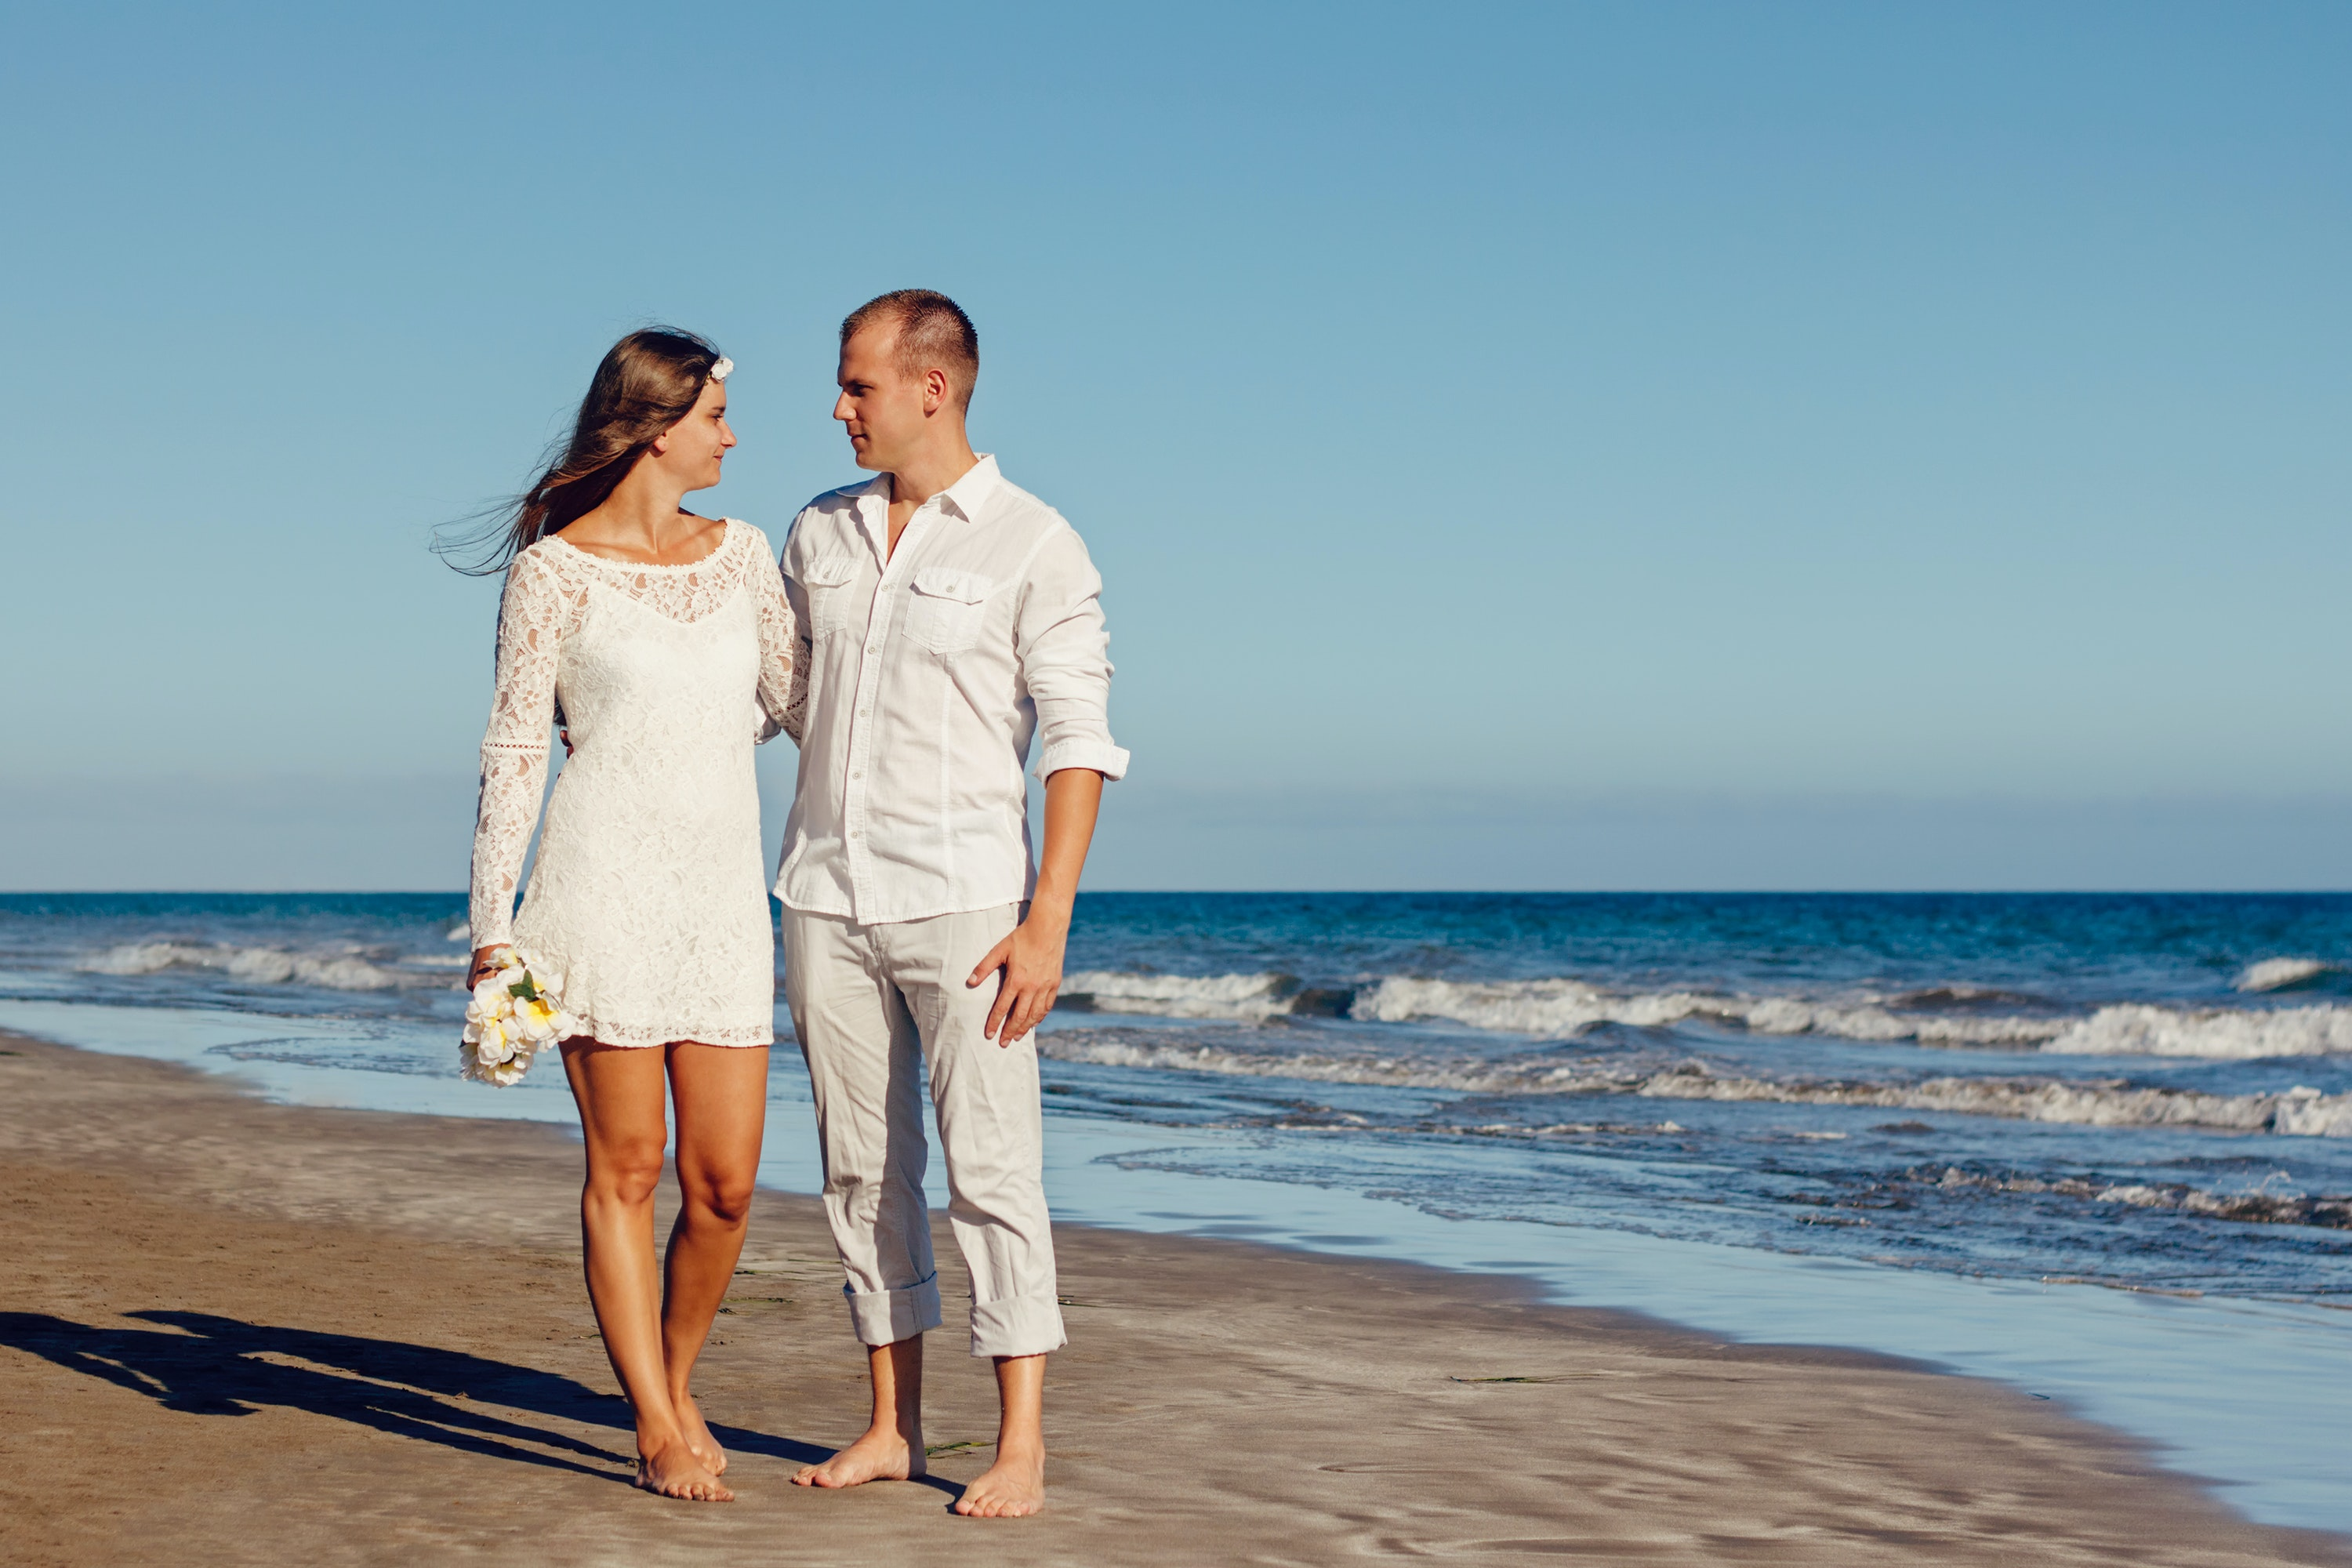 Free stock photo of adults beach beach wedding edit with snappa adults beach beach wedding junglespirit Image collections